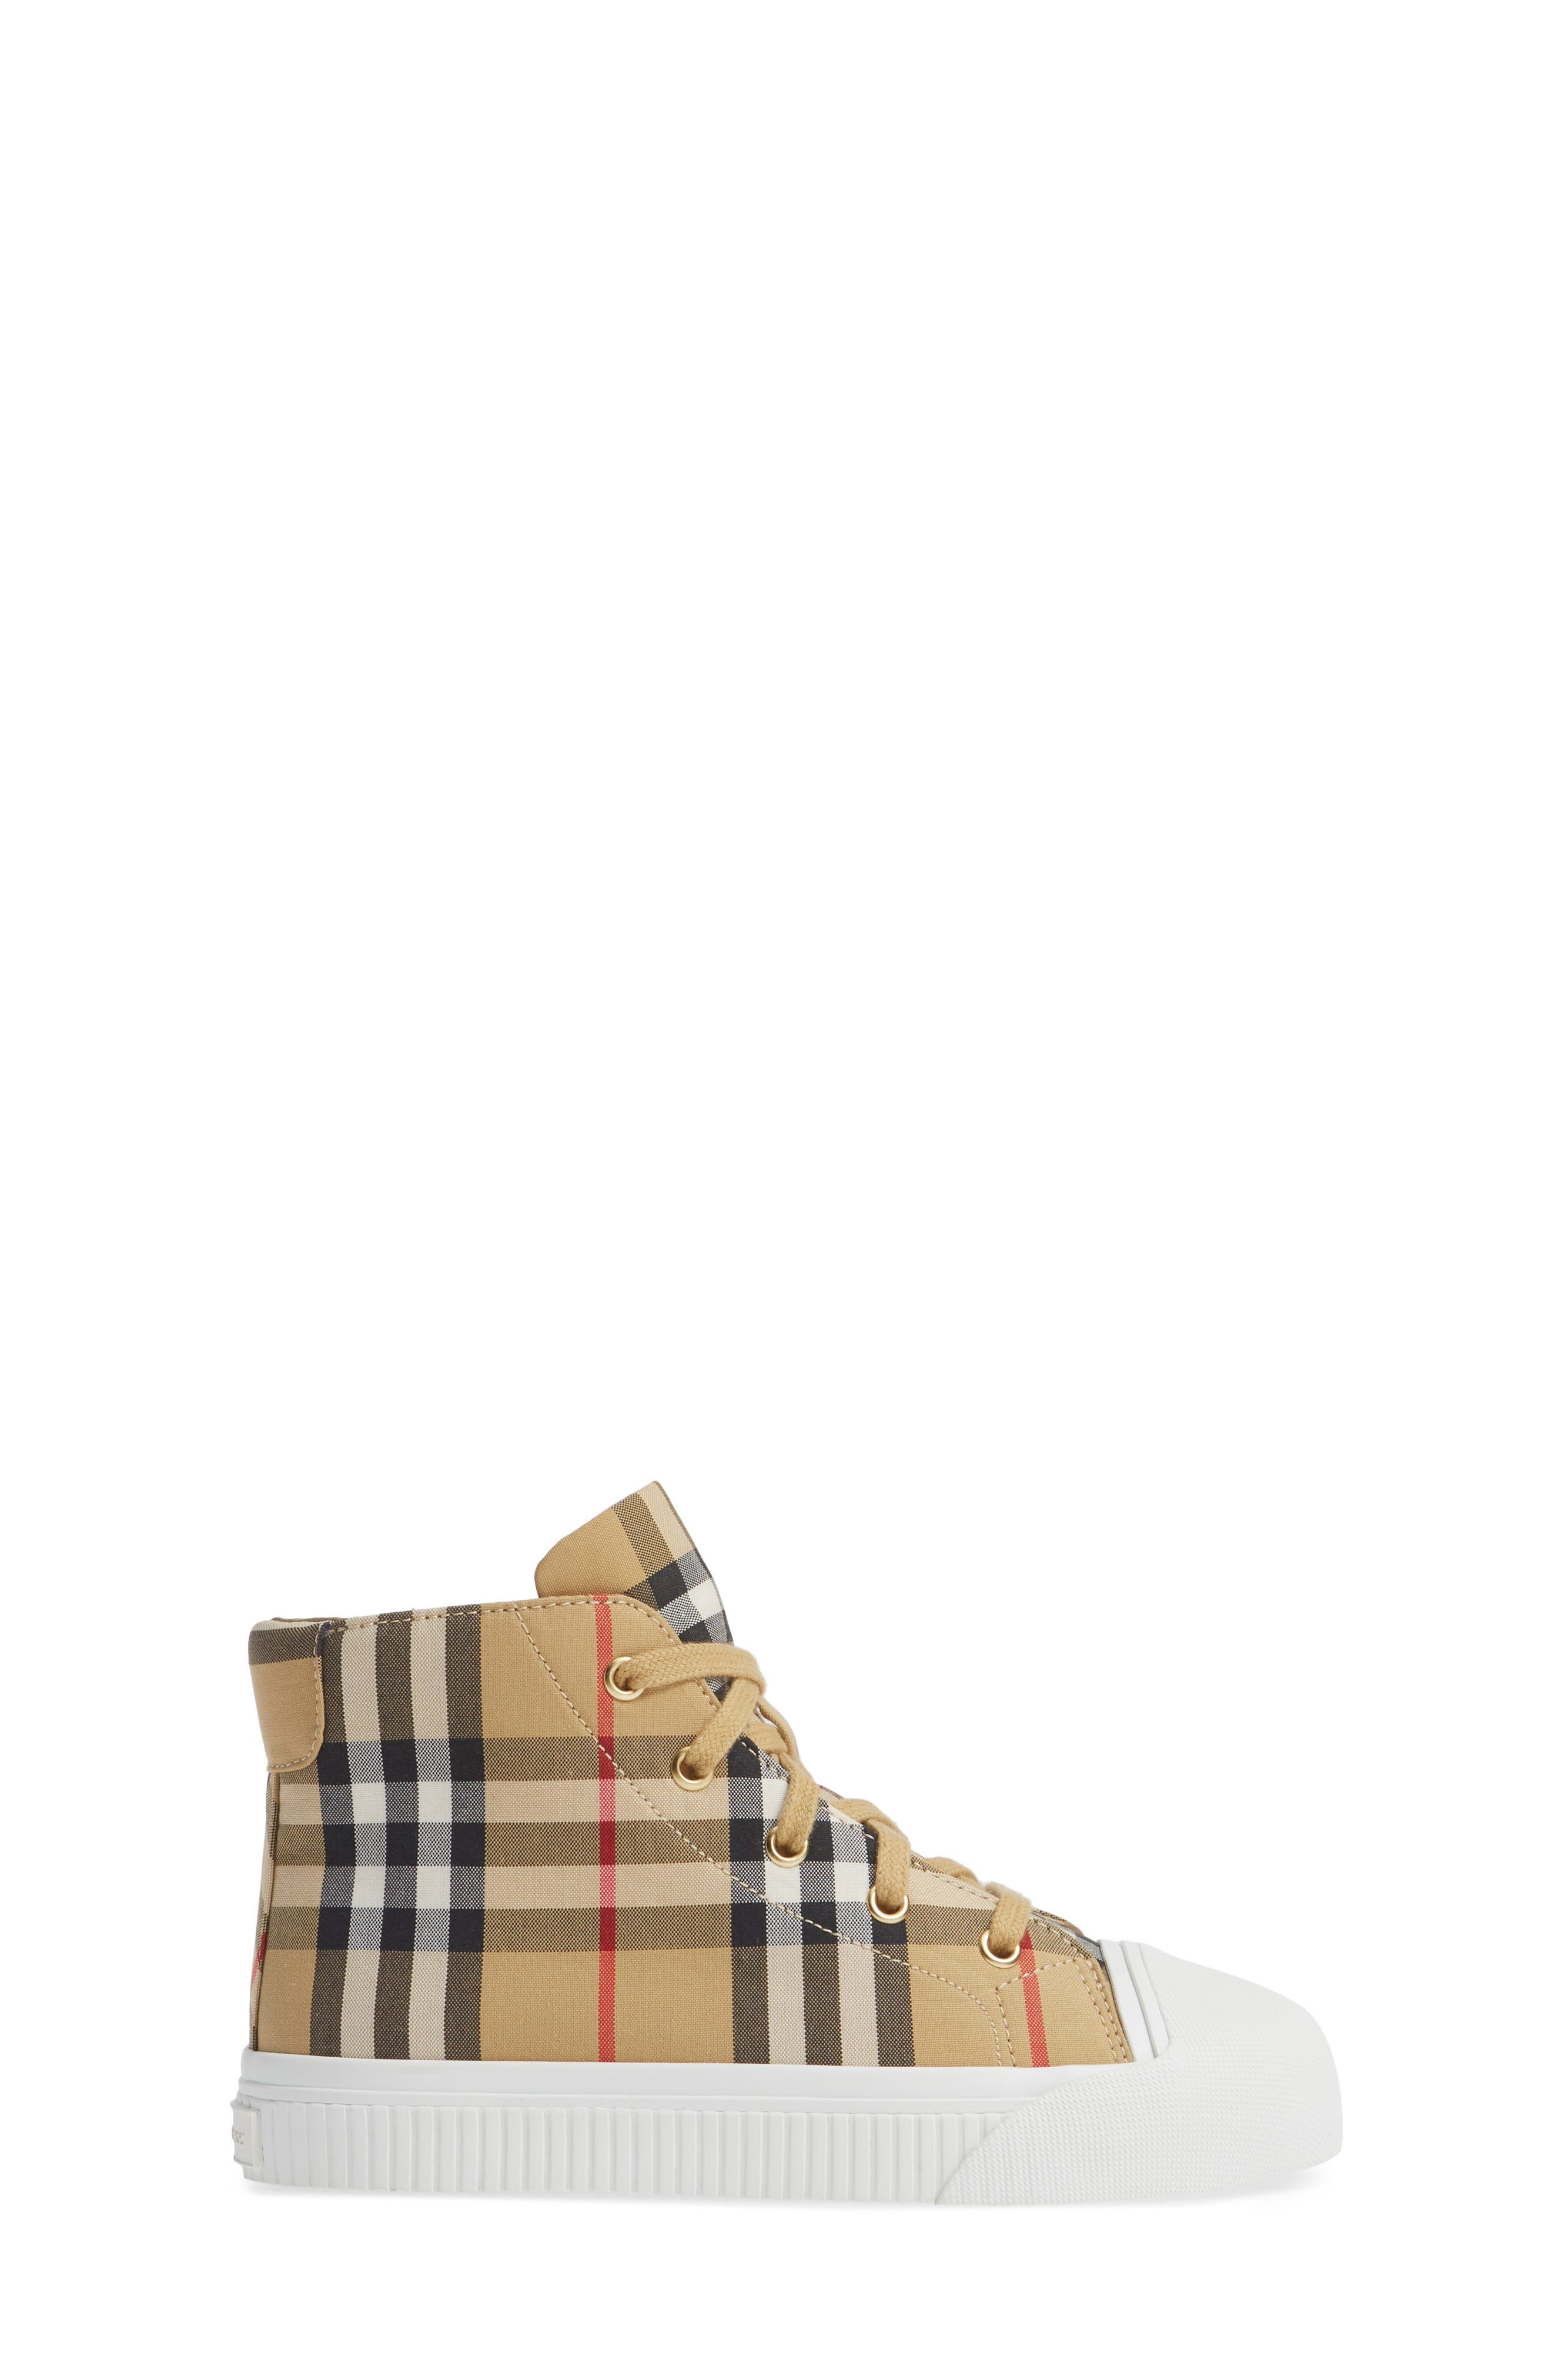 BURBERRY, Belford High-Top Sneaker, Alternate thumbnail 3, color, ANTIQUE YELLOW/ OPTIC WHITE